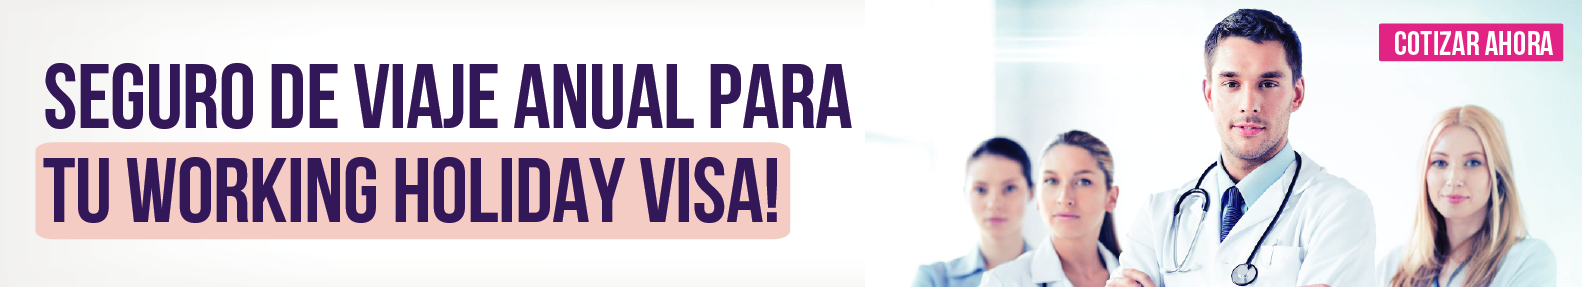 seguros de viaje working holiday suecia